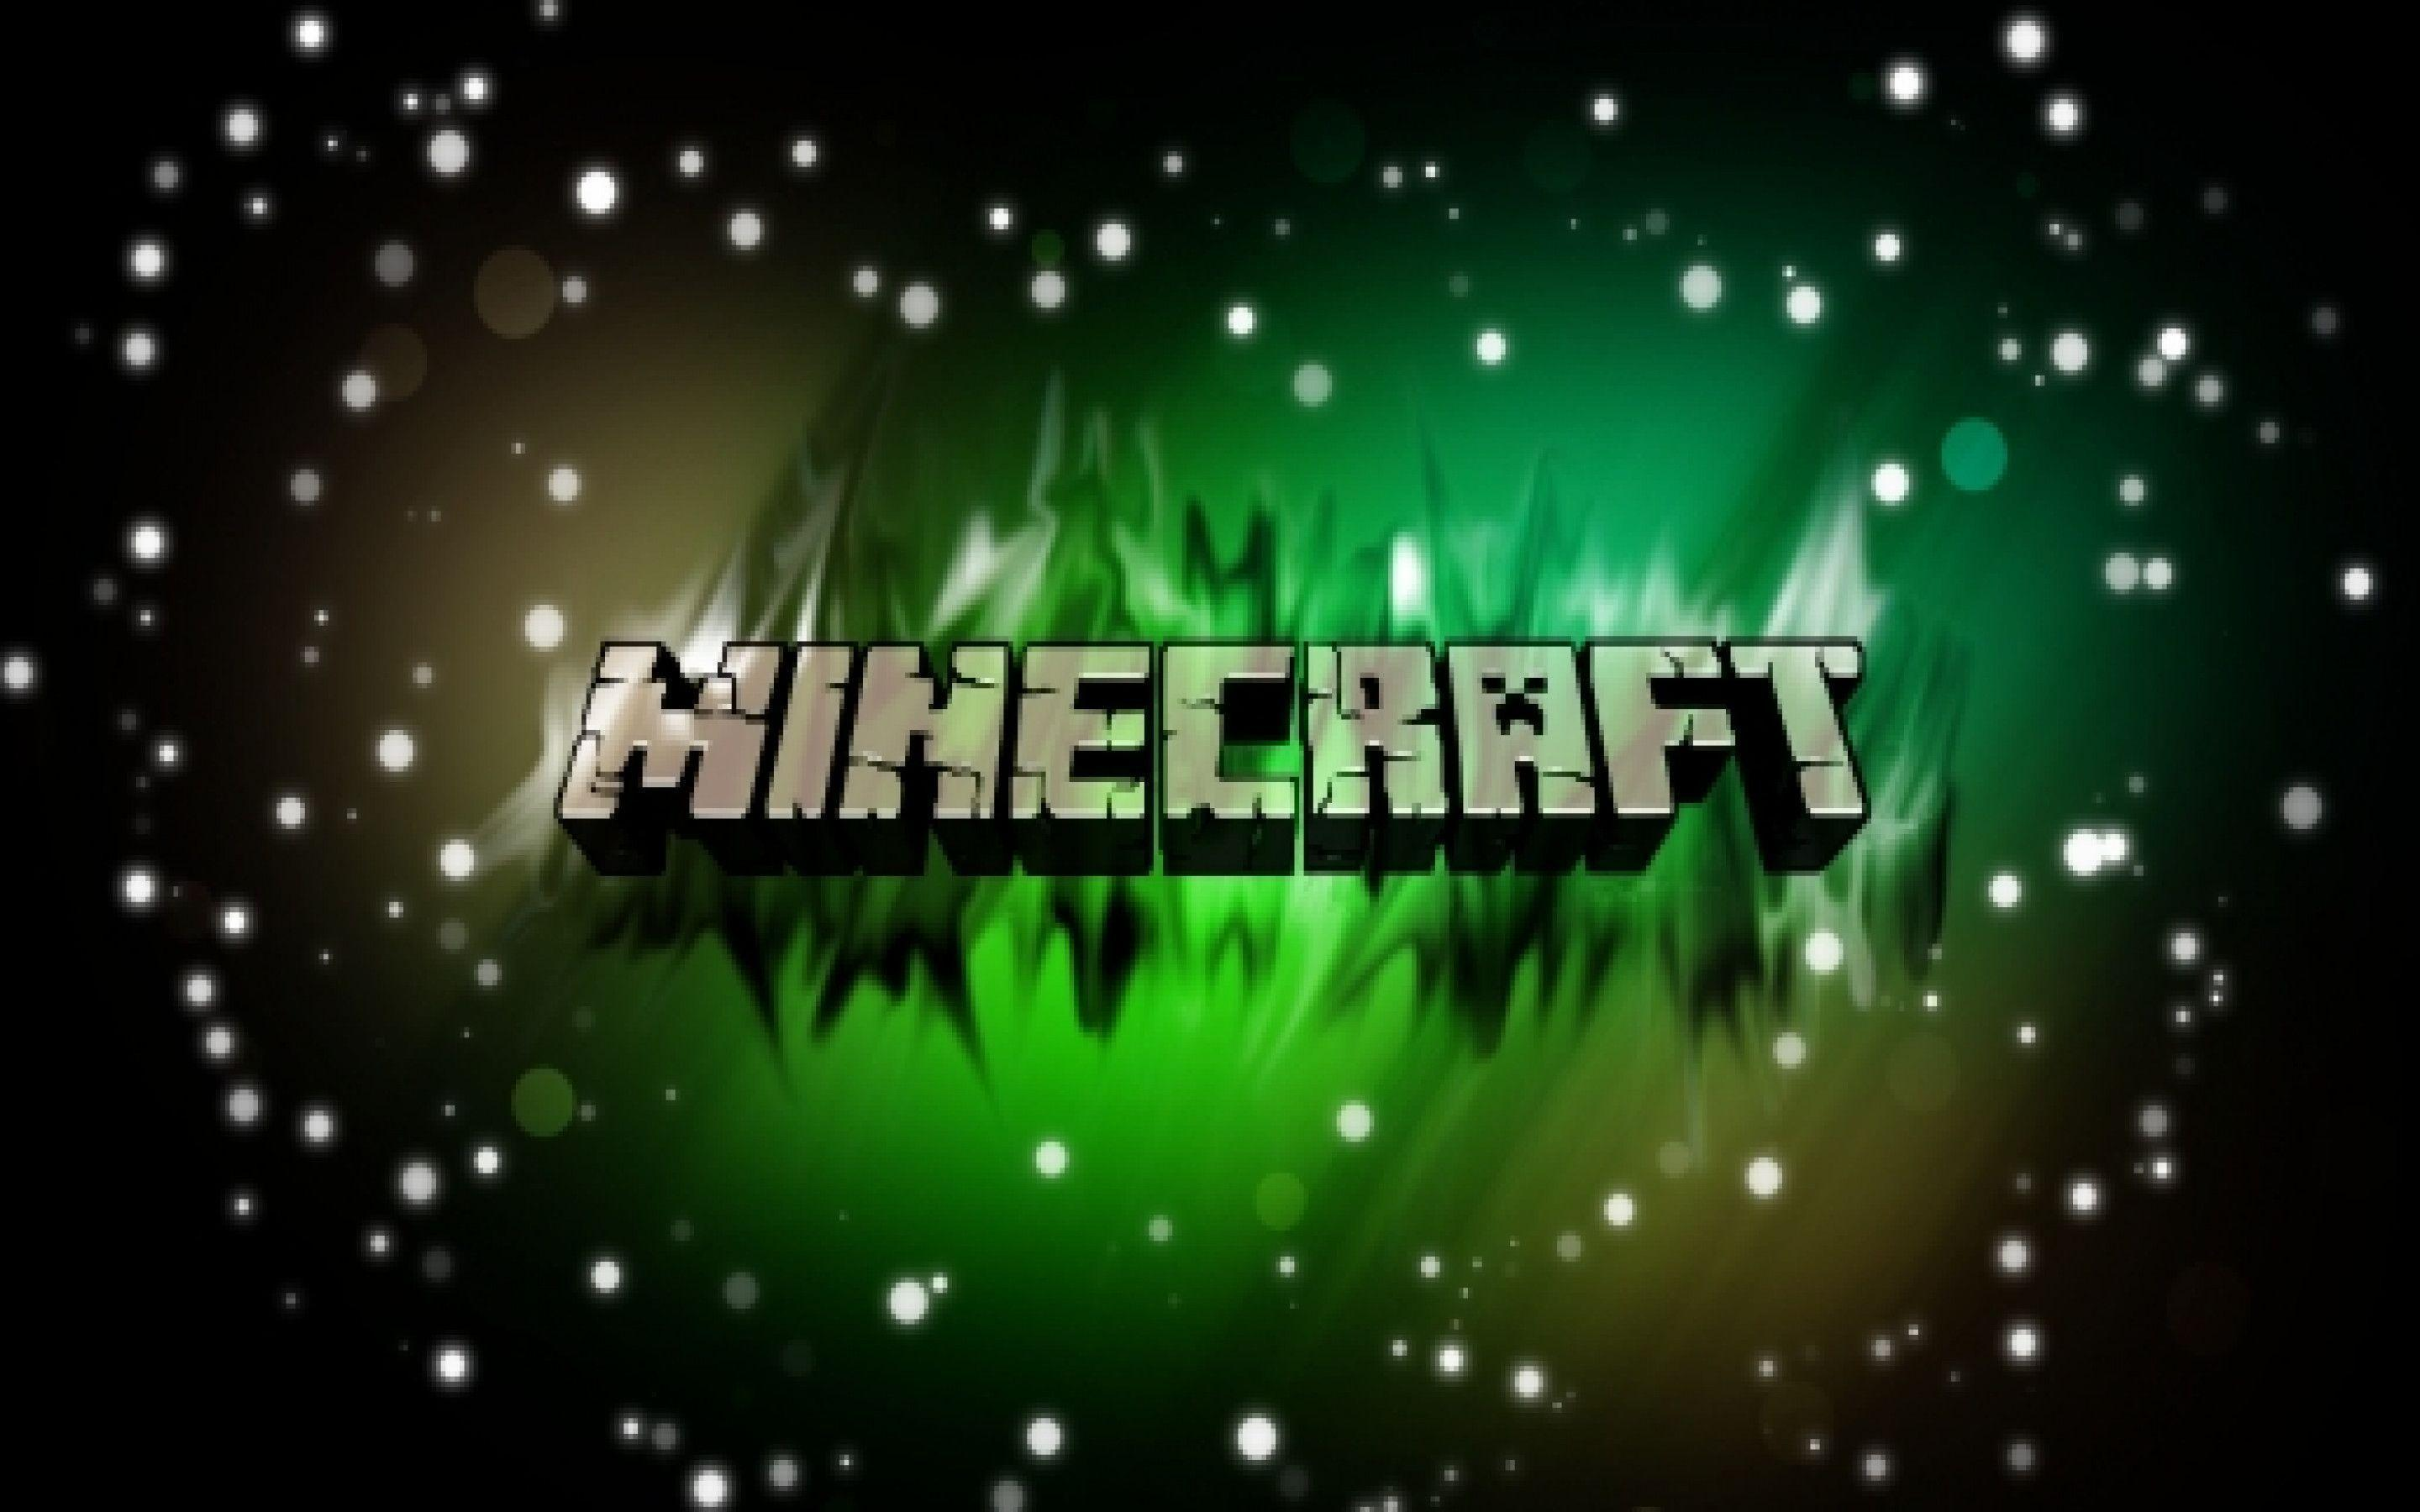 Minecraft Wallpapers Hd Desktop Backgrounds – 1920×1080 Hd